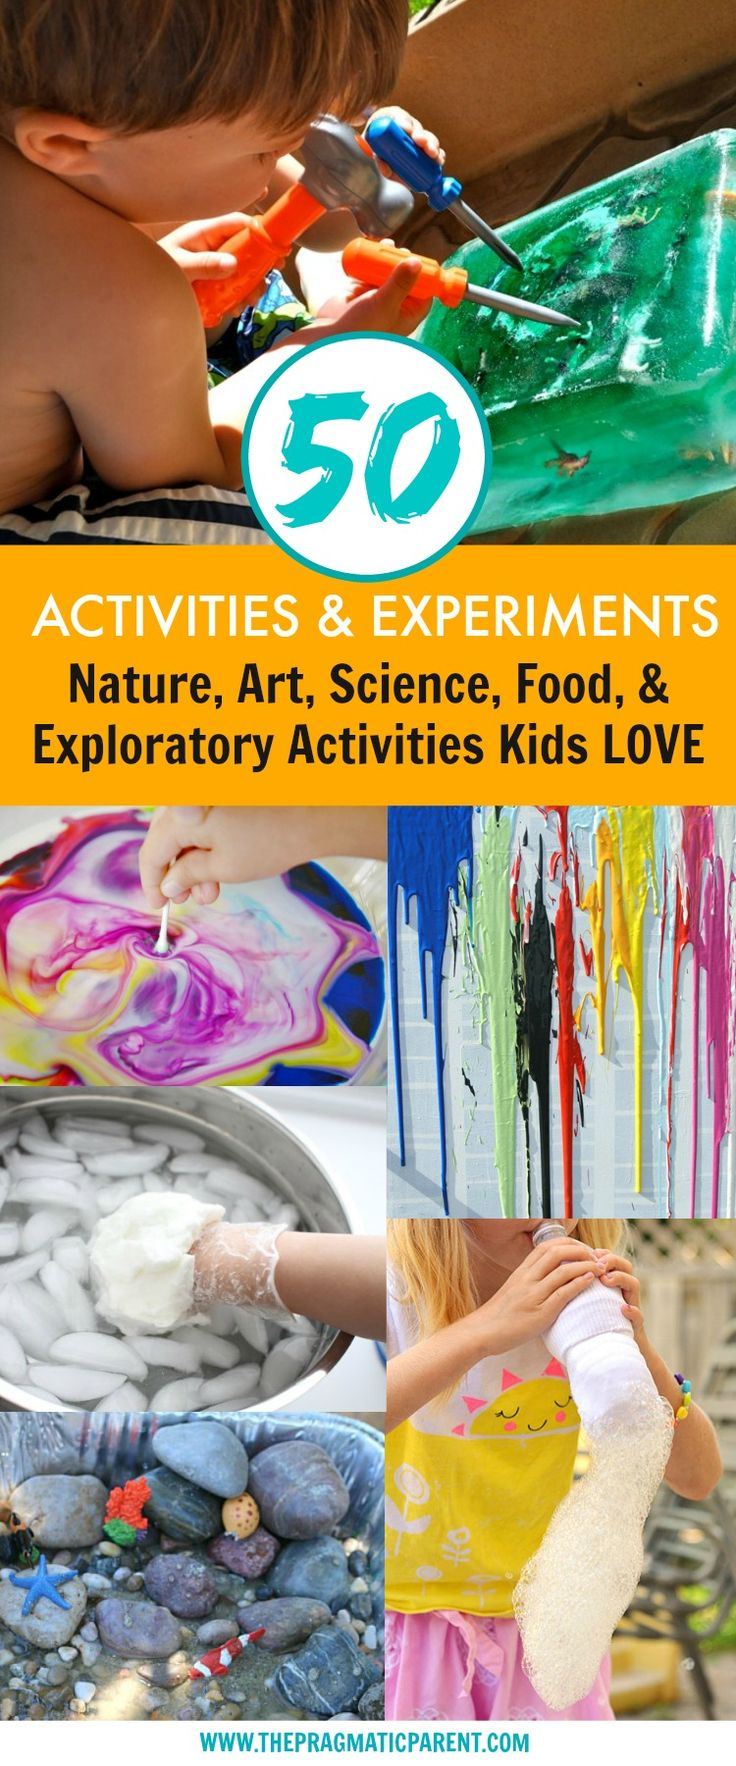 50 Summer Activities and Experiments for Kids to Explore and Learn During the Summer. 50 Activities and Experiments with Food, Nature, Science and Exploratory Experiments Kids will Love. Easy Set up Activities and Fun Experiments for Kids. via @https://www.pinterest.com/PragmaticParent/